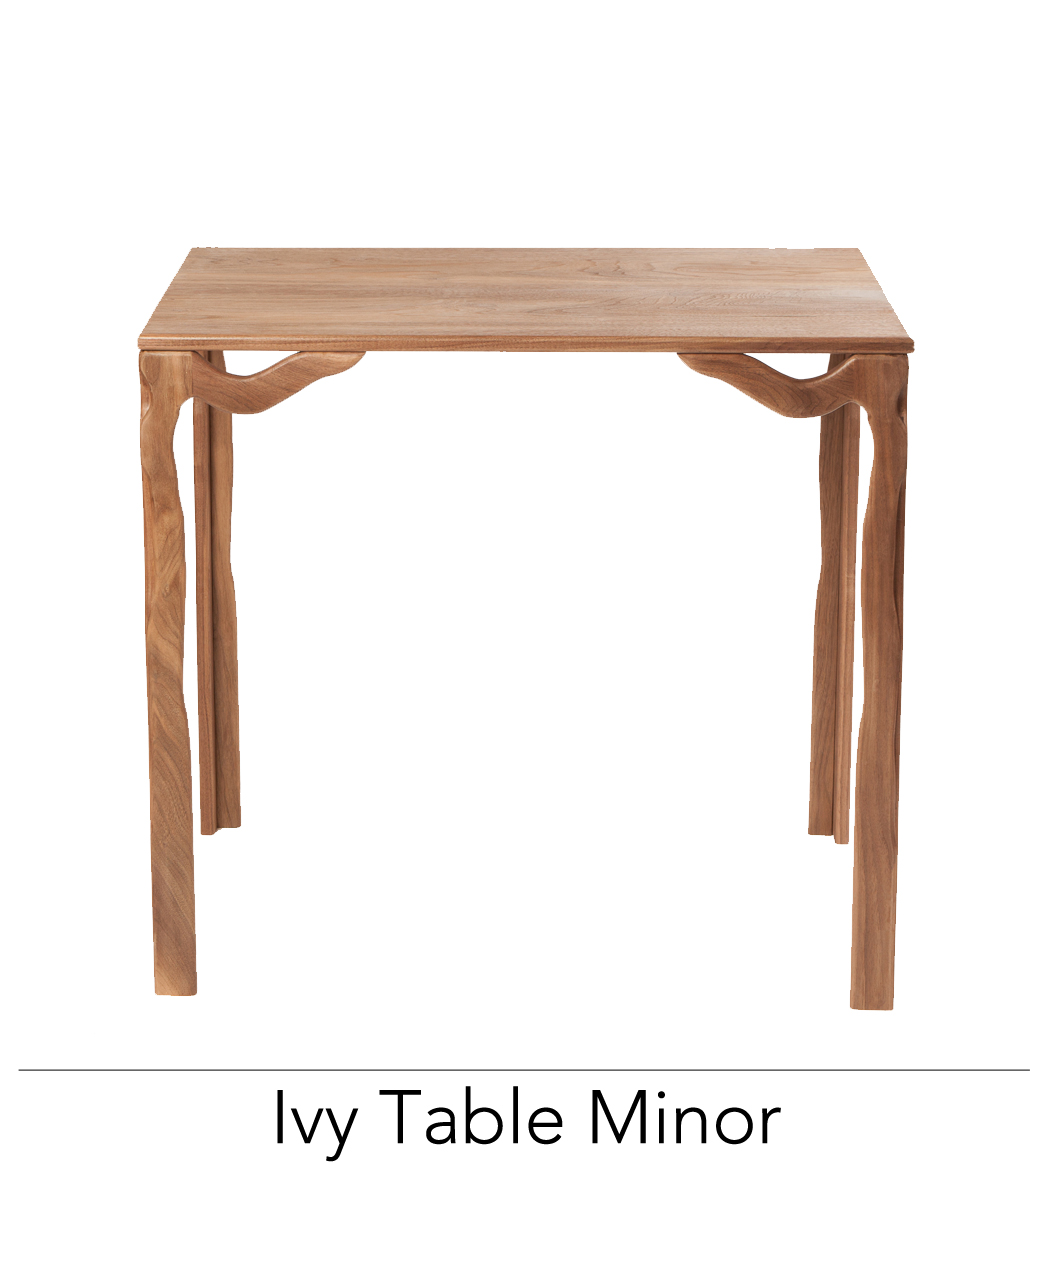 Ivy Table Minor Front New.jpg